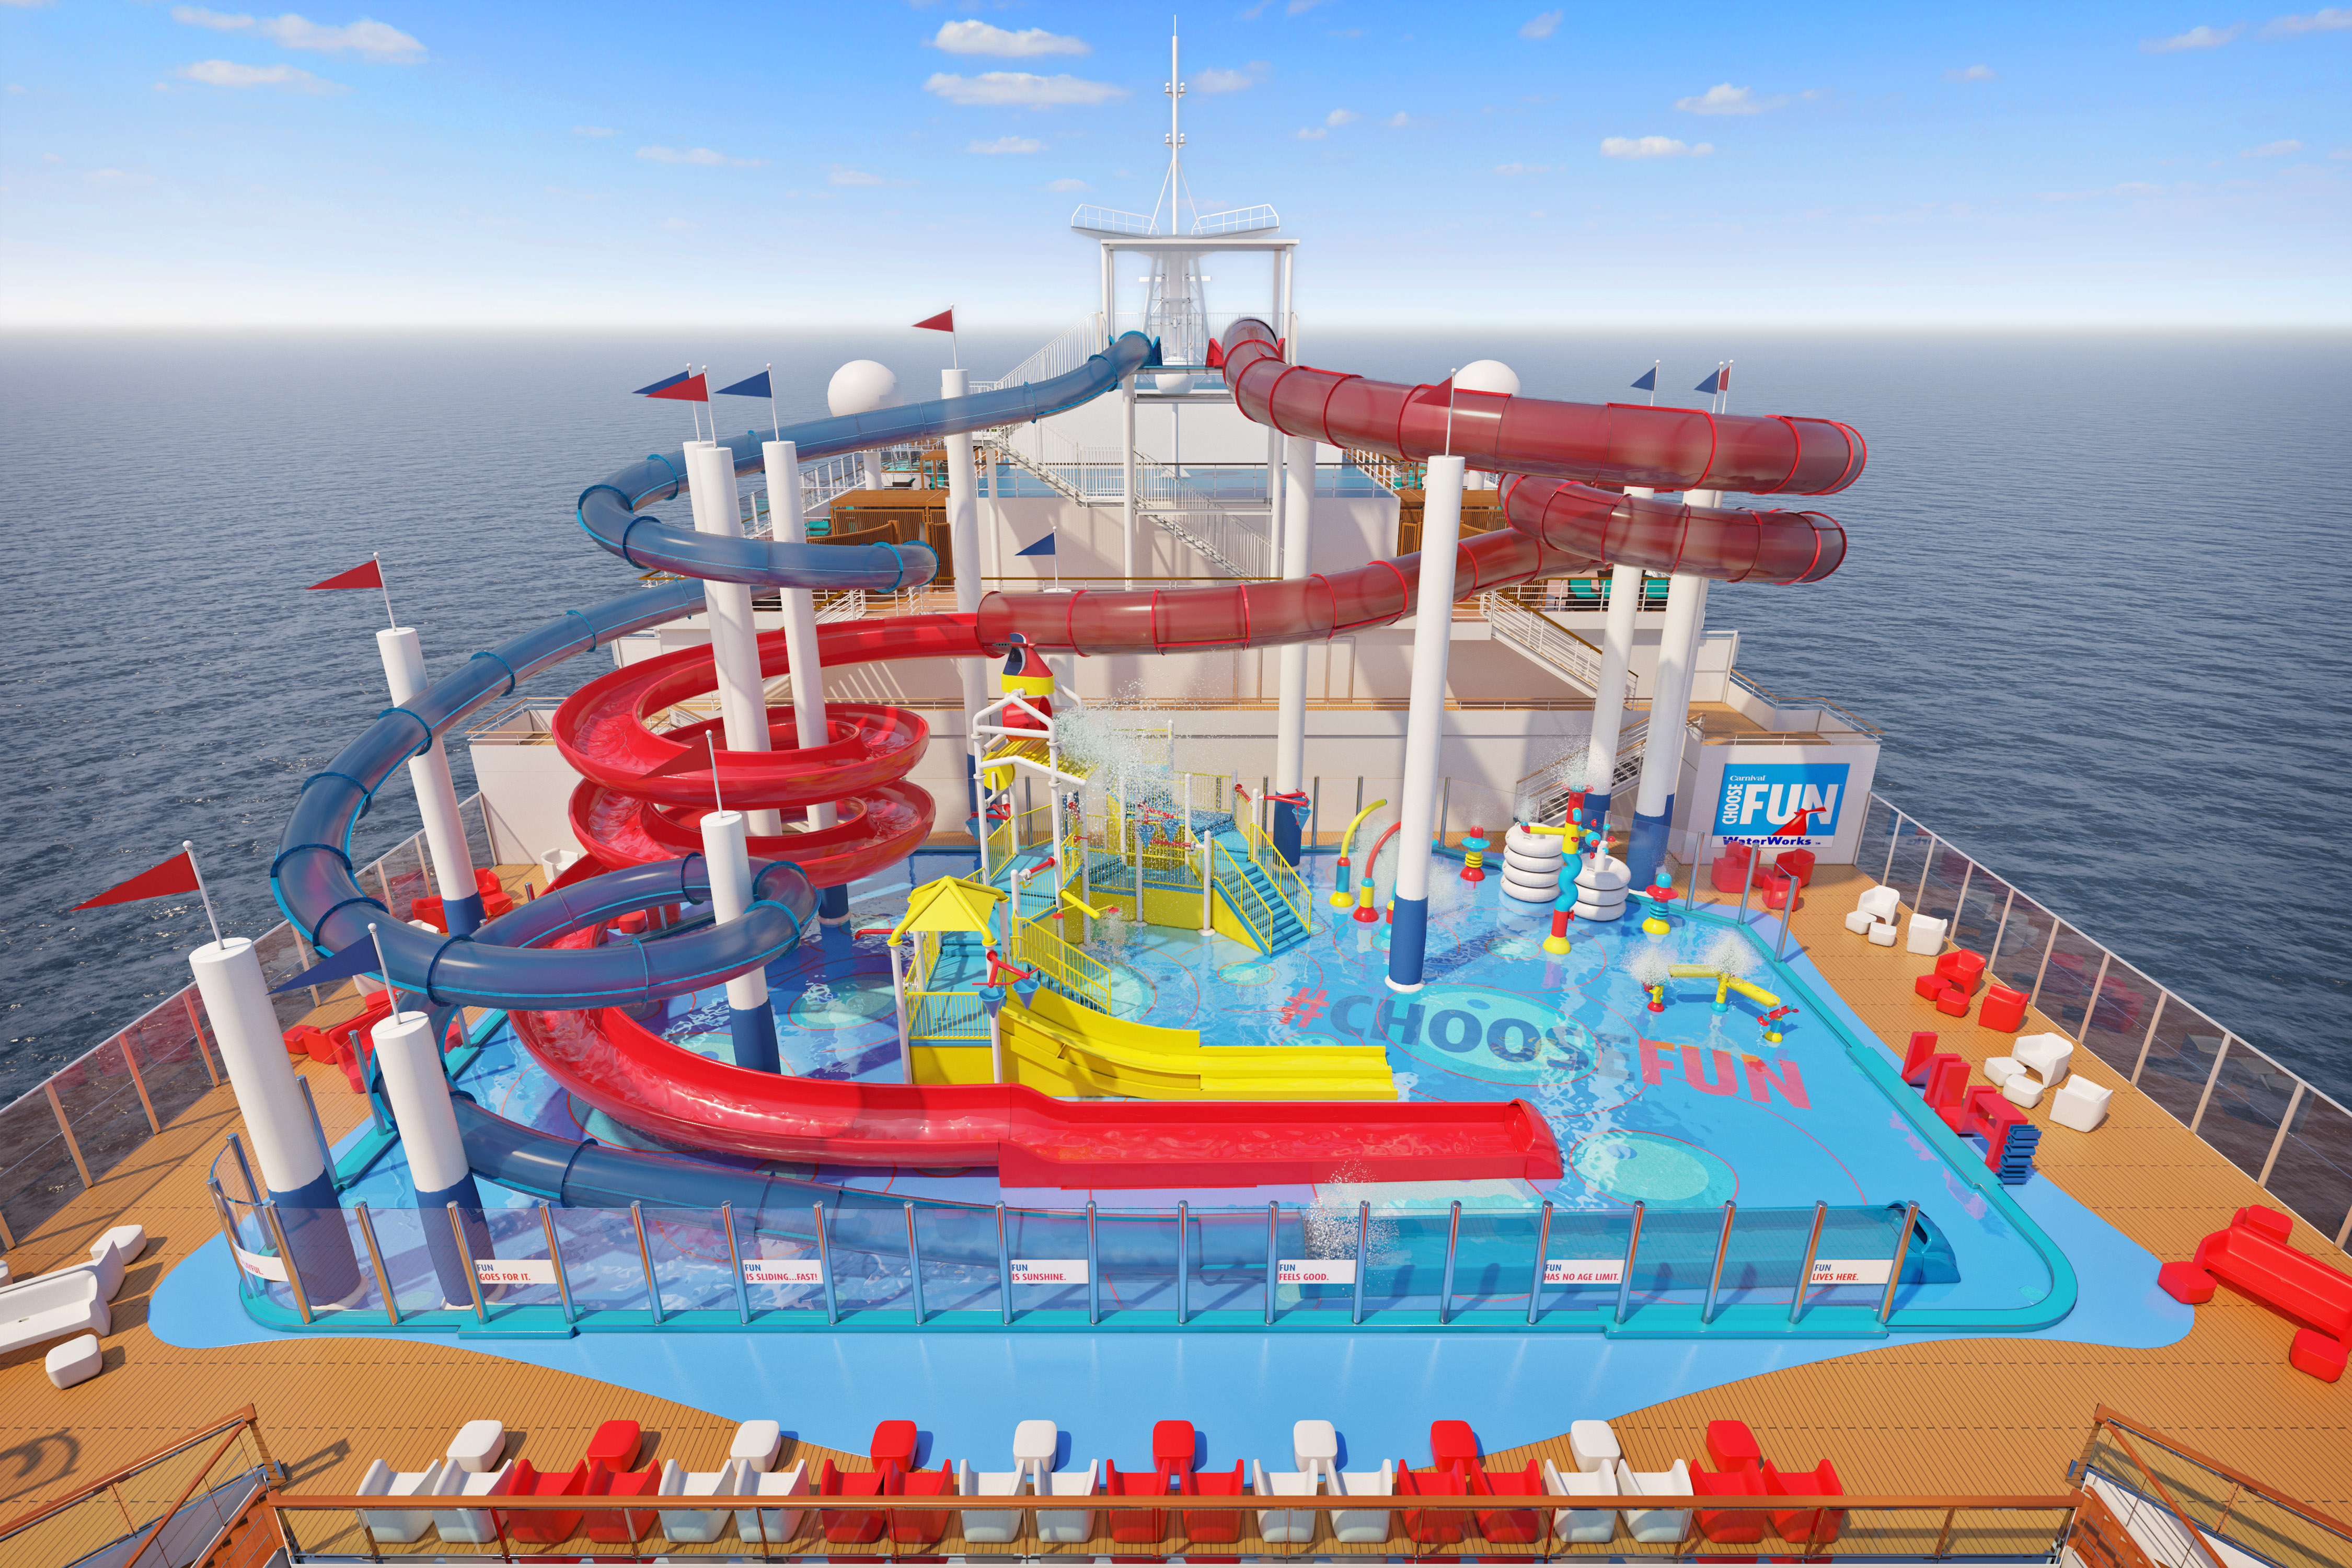 Carnival's Chief Fun Officer Shaquille O'Neal Reveals Plans for Shaq-tastic Choose Fun-Themed Water Park Aboard New Carnival Panorama